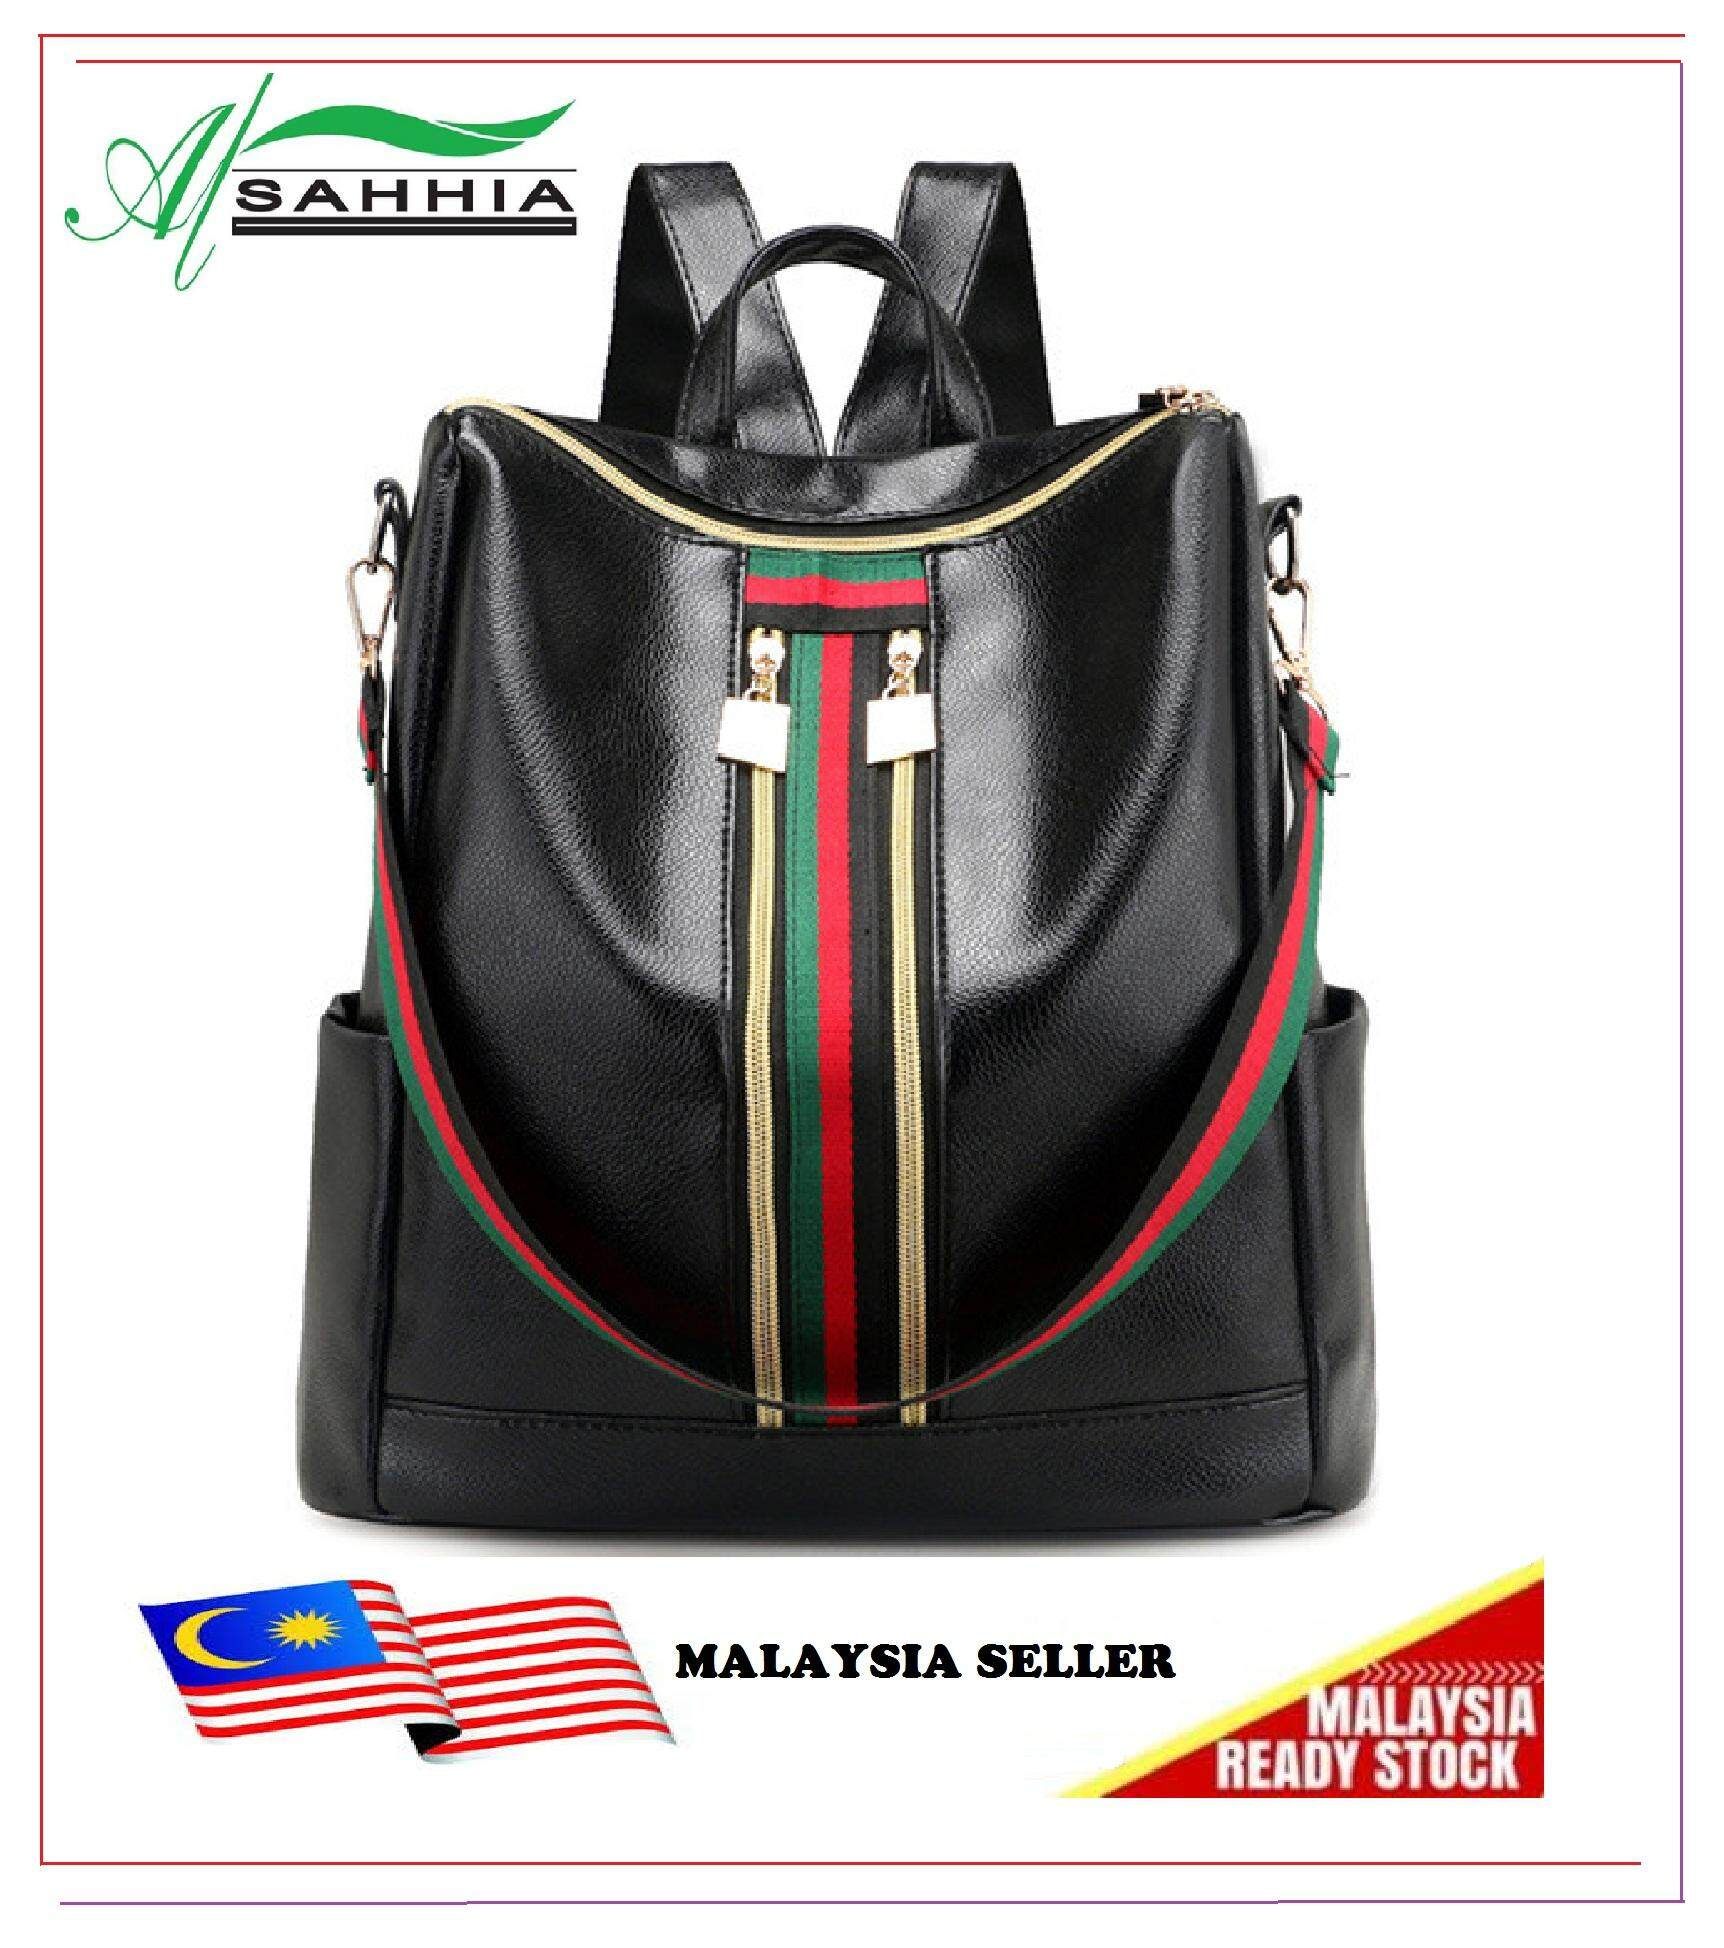 Women Backpacks Buy At Best Price In Malaysia Tas Ransel Distro Backpack Traveling Lots Of Pockets Al Sahhia Ready Stock Grand Warni Beg Pu Bag Travel Casual Colour Zip